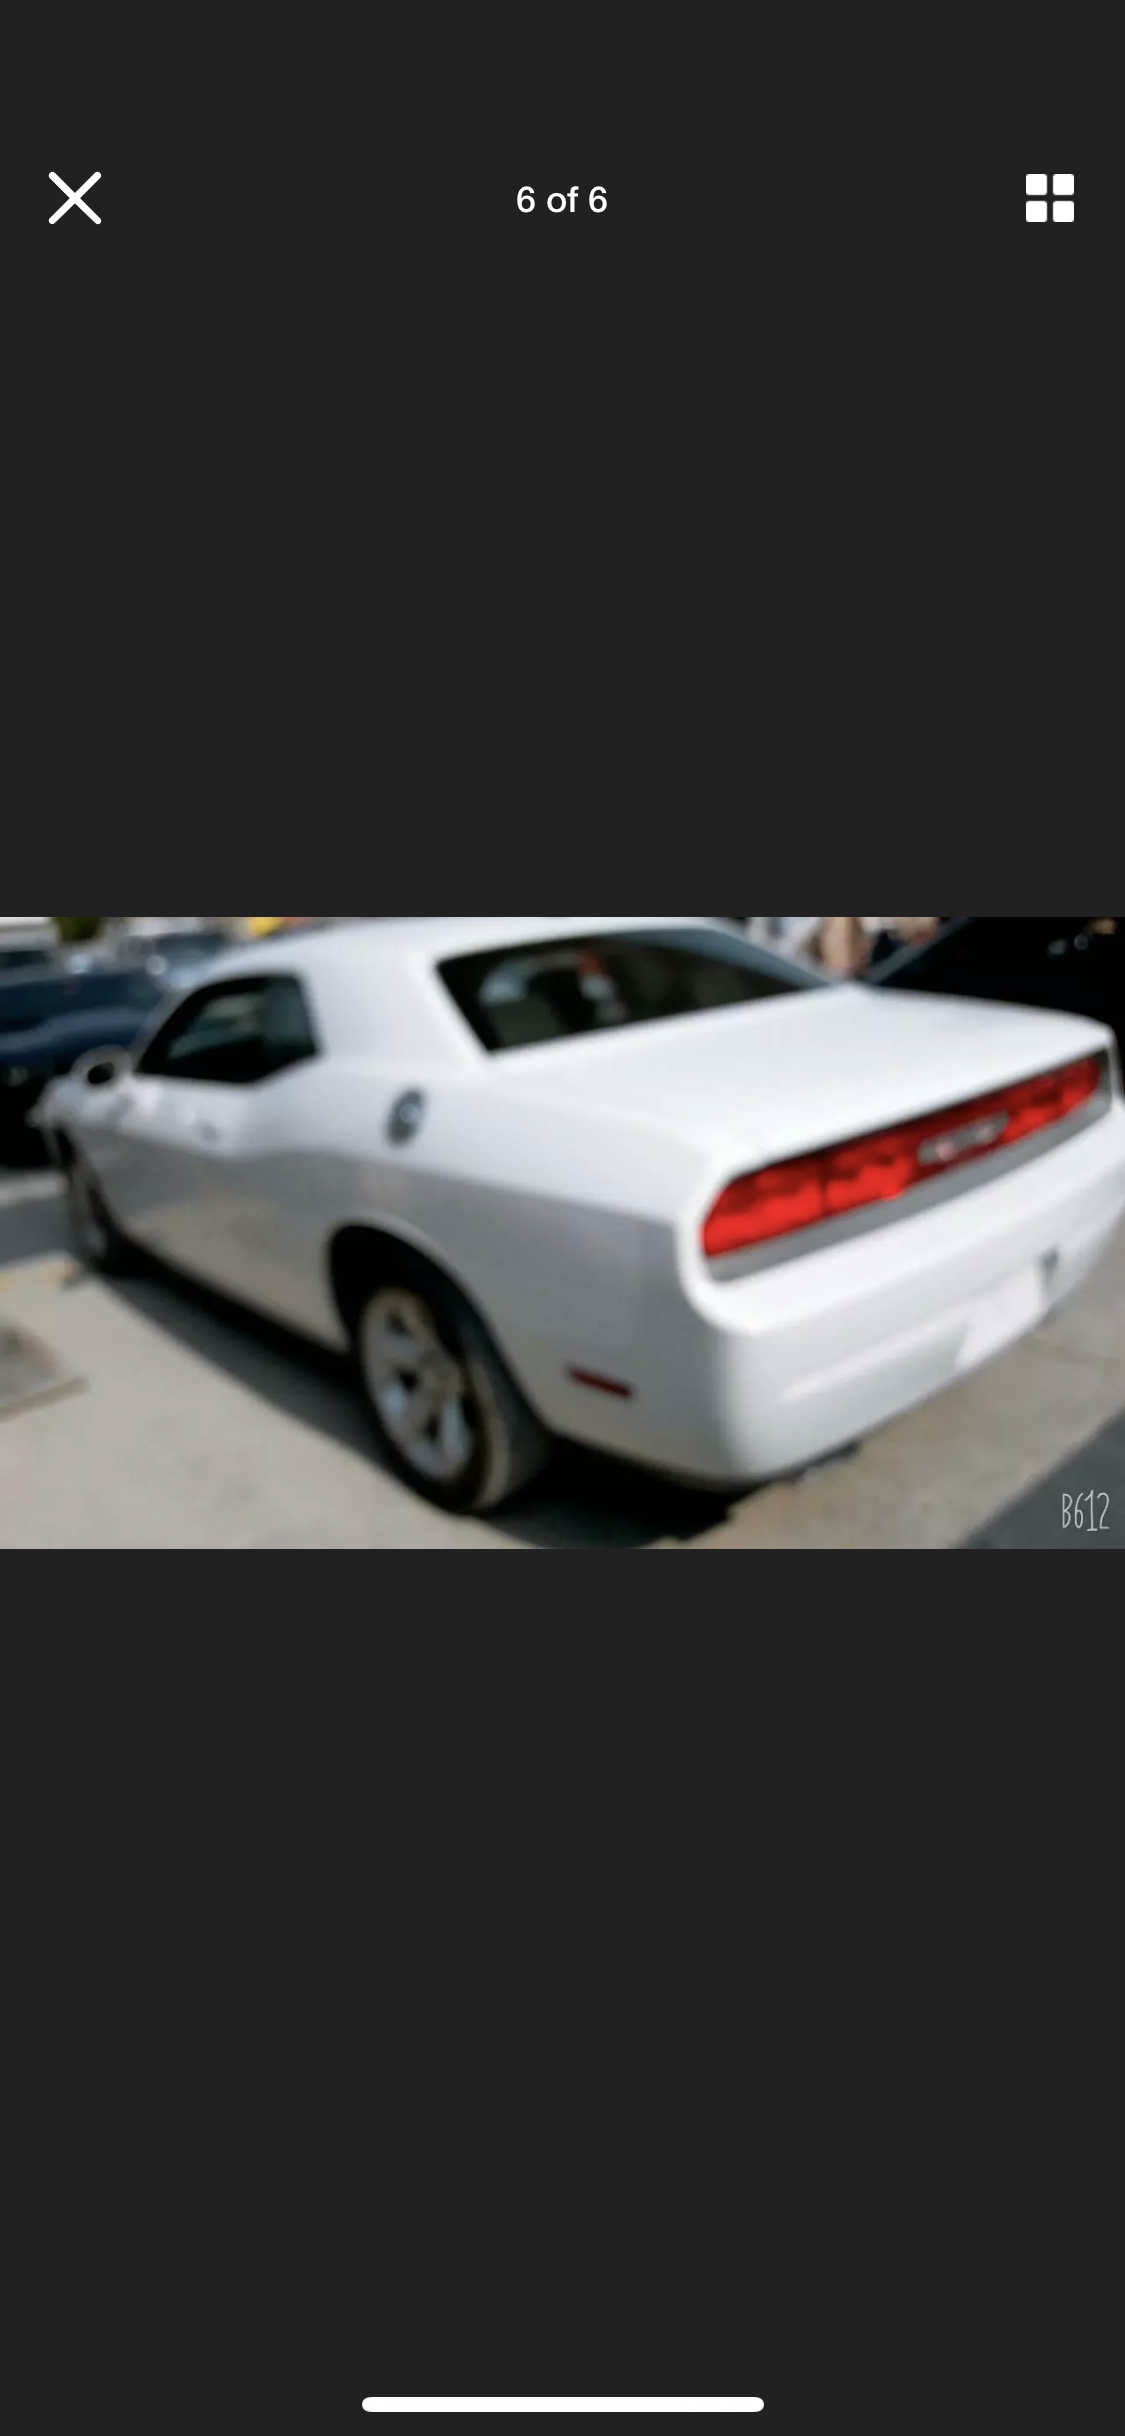 2013 DODGE CHALLENGER 3.6 AUTO NOT HEMI LHD FRESH IMPORT For Sale (picture 6 of 6)